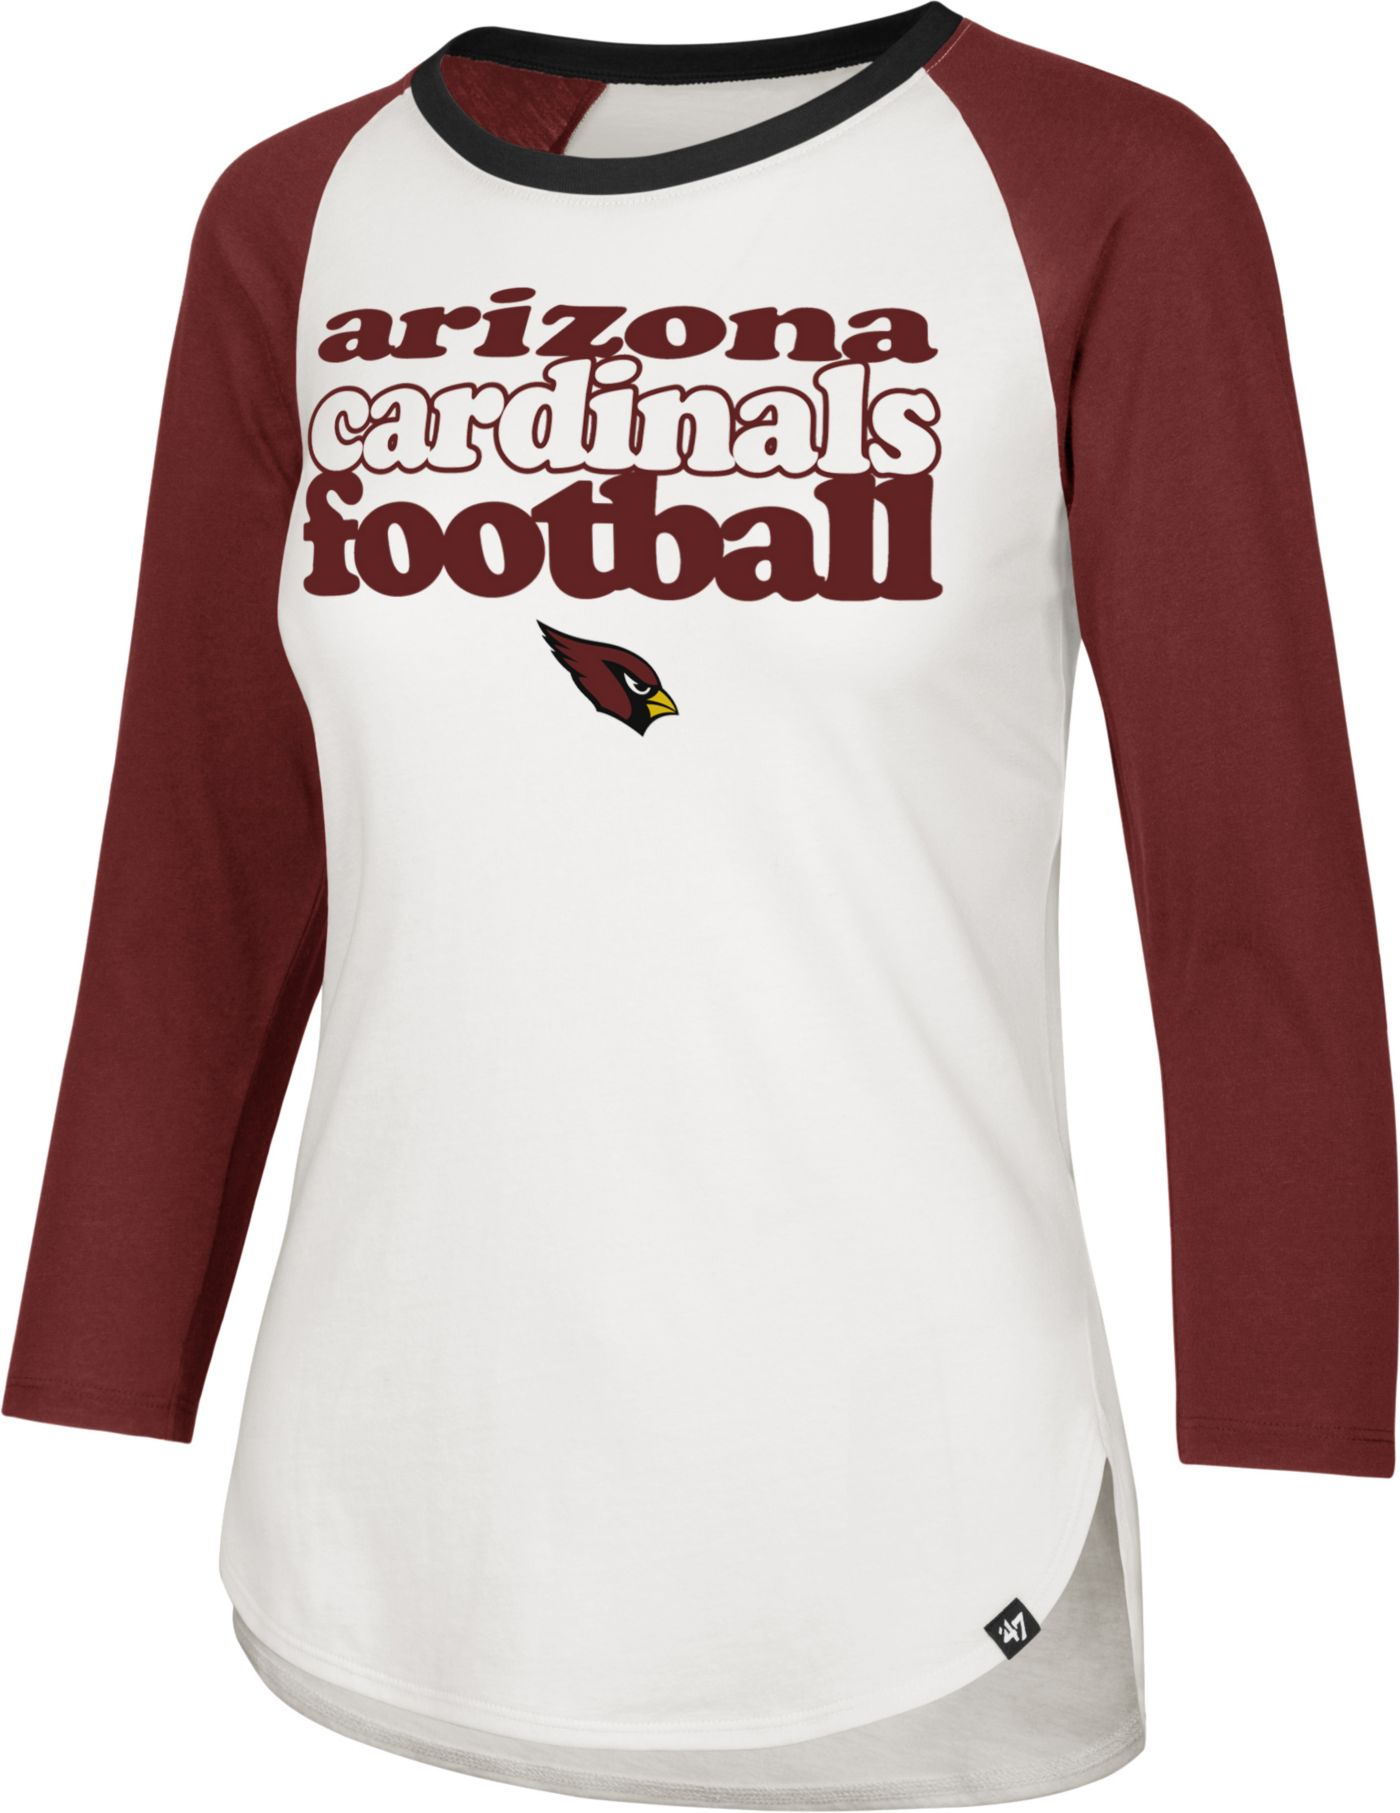 '47 Women's Arizona Cardinals Retro Stock Throwback Raglan Shirt